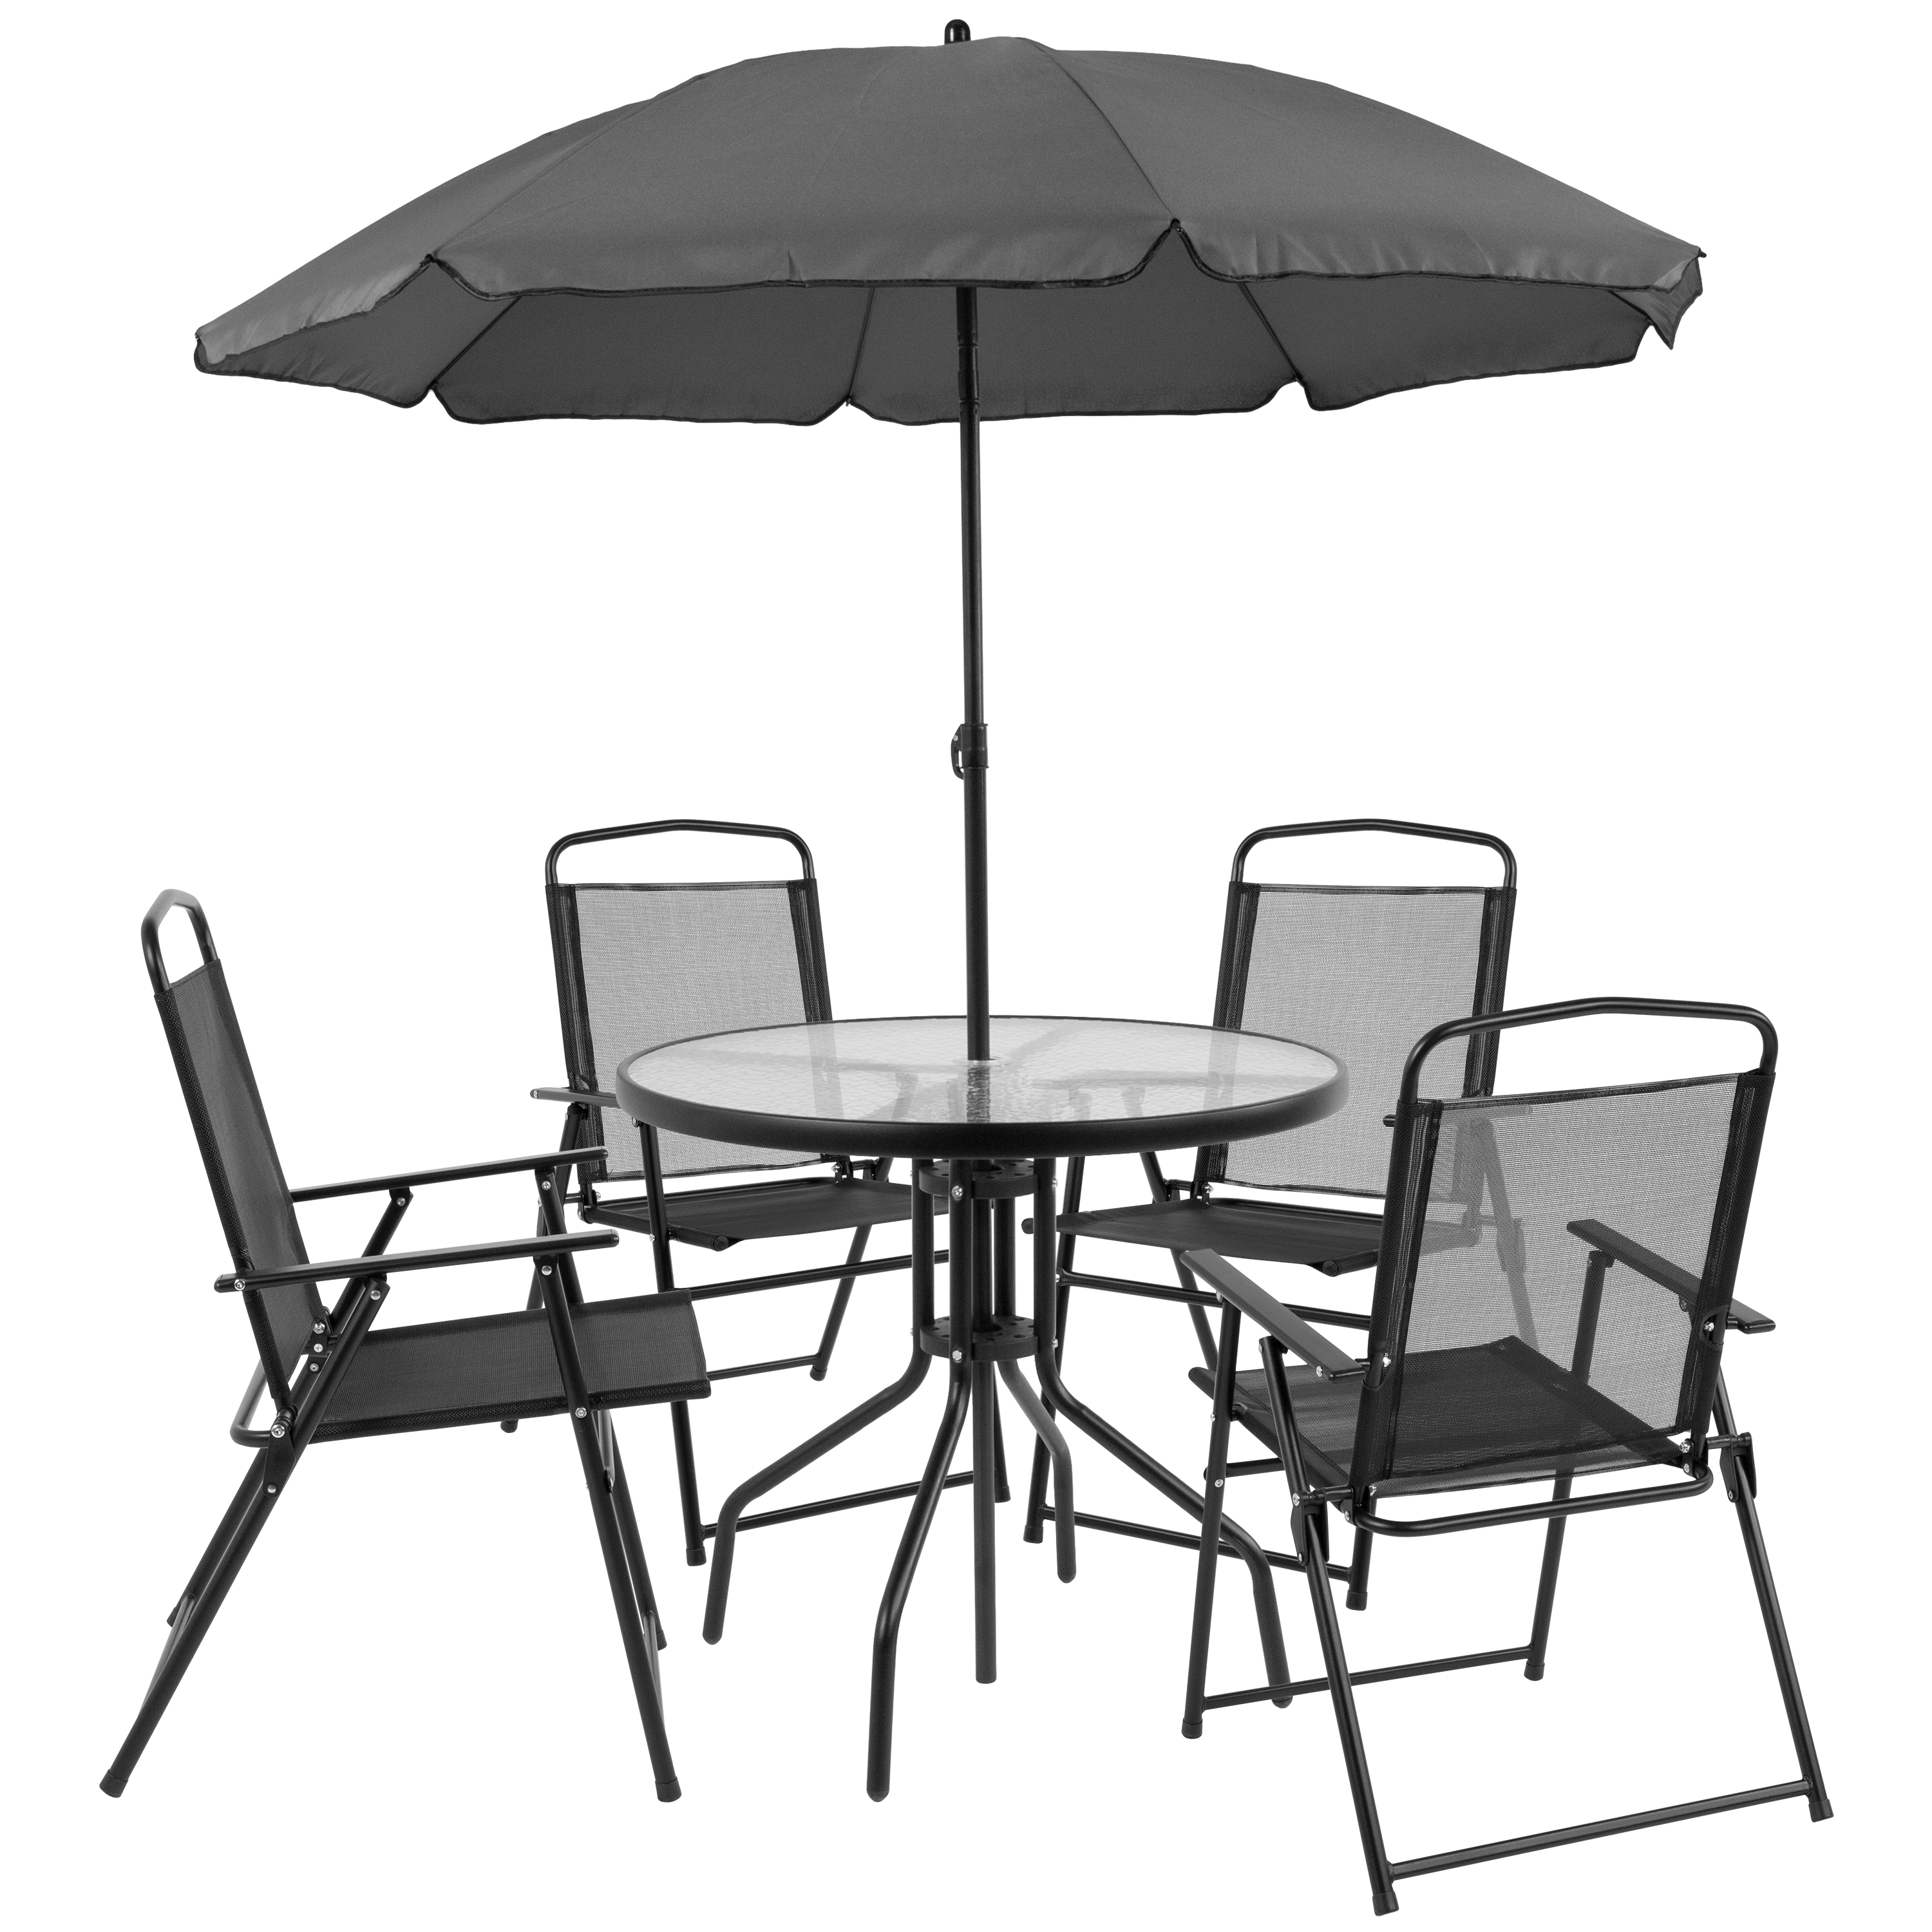 Incroyable Flash Furniture Nantucket 6 Piece Outdoor Patio Dining Set, Black